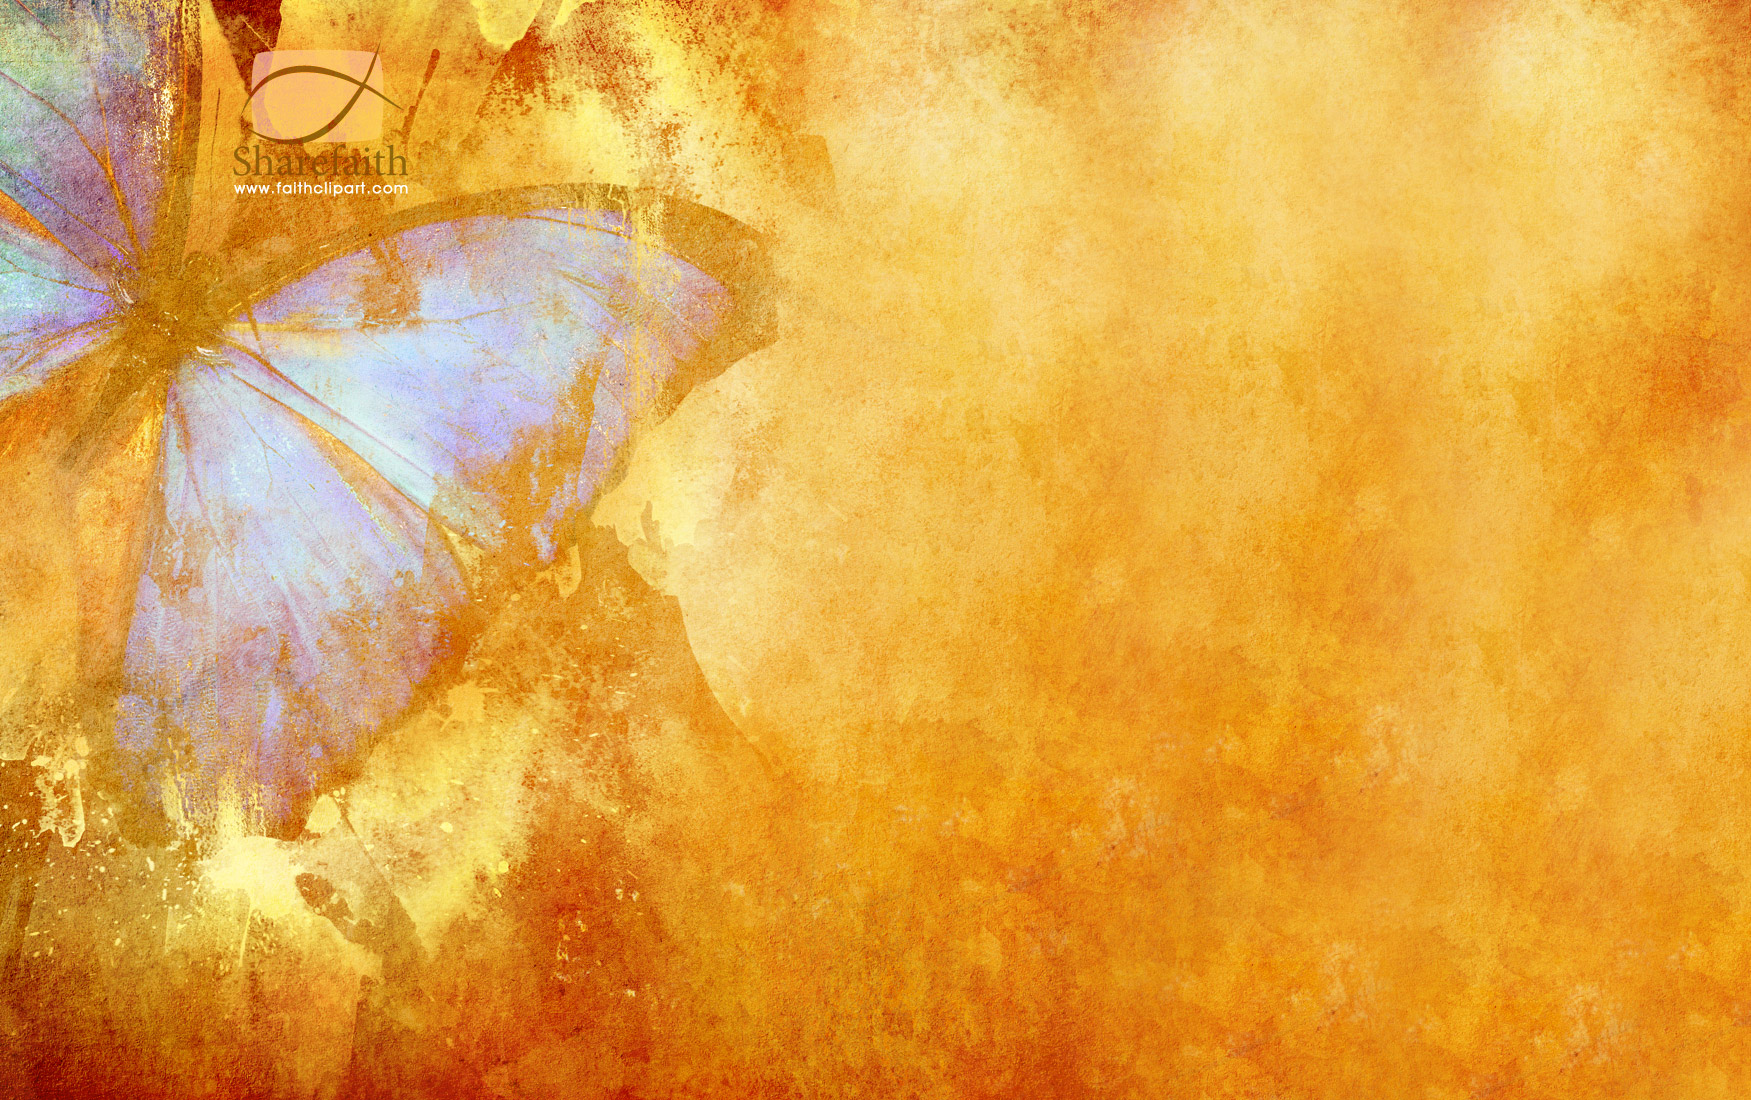 Christian Twitter Backgrounds Religious Twitter Backgrounds 1751x1100